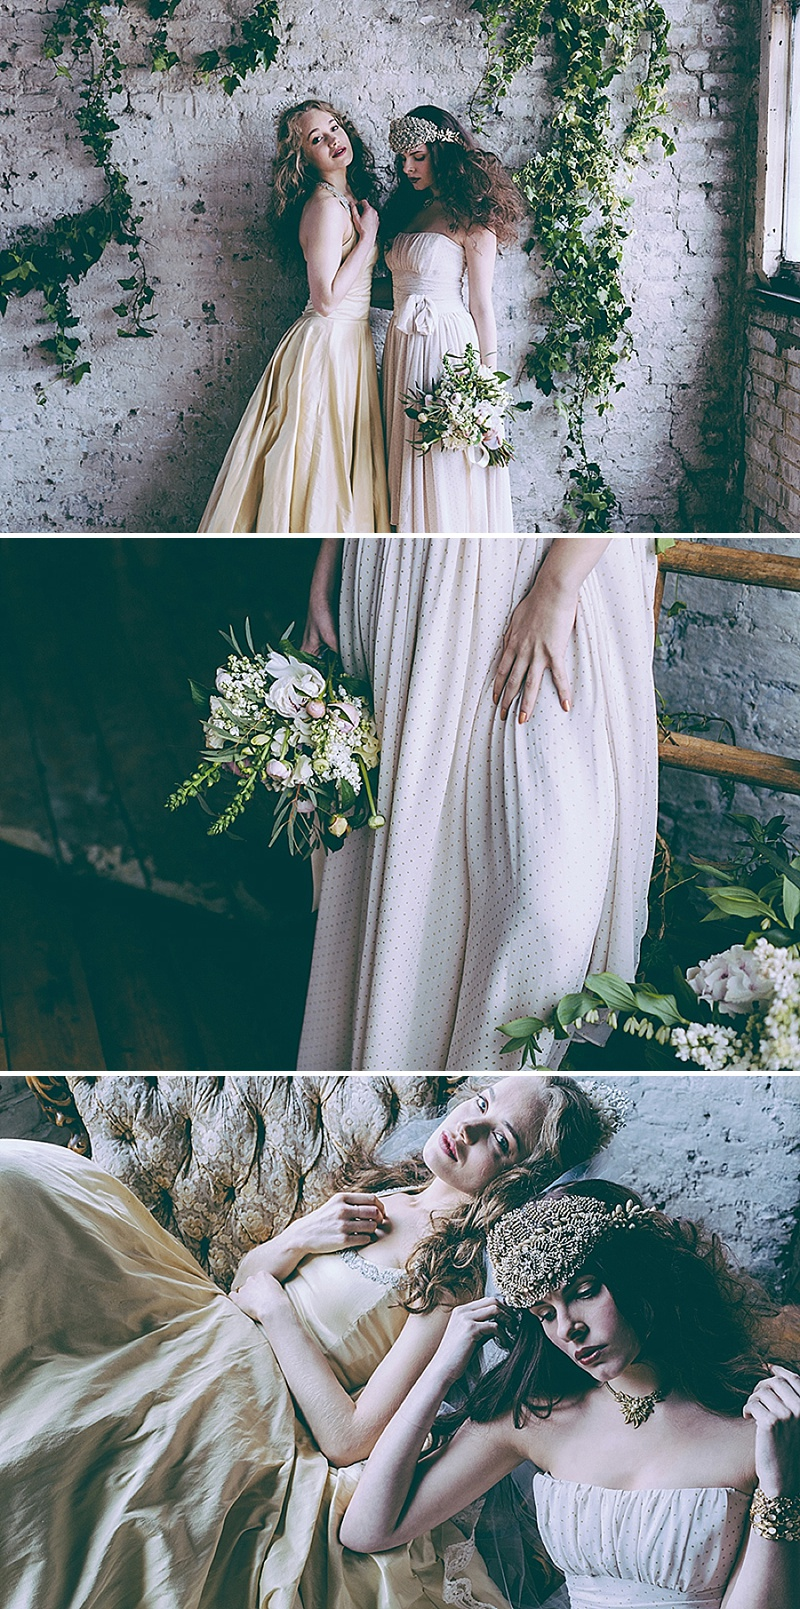 Rustic And Romantic Fairytale Bridal Inspiration Shoot With Gowns From Faith Caton-Barber And Accessories From Rosie Weisencrantz With Images By Miss Gen Photography 4